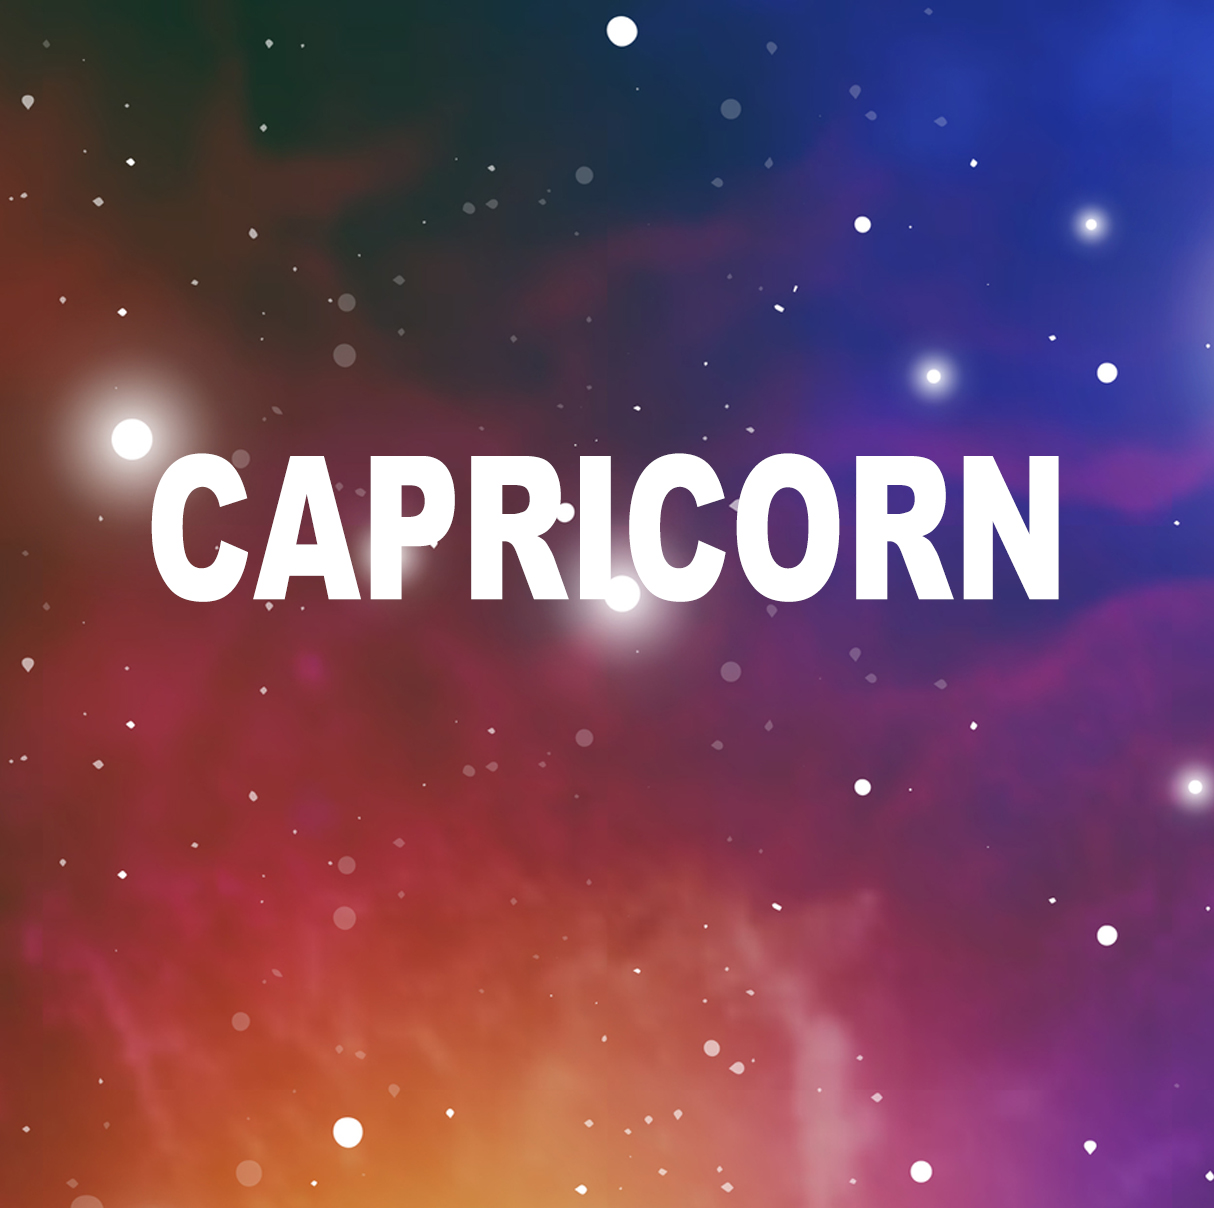 capricorn, capricorn 2018, capricorn horoscope, capricorn 2018 horoscope, capricorn horoscope 2018